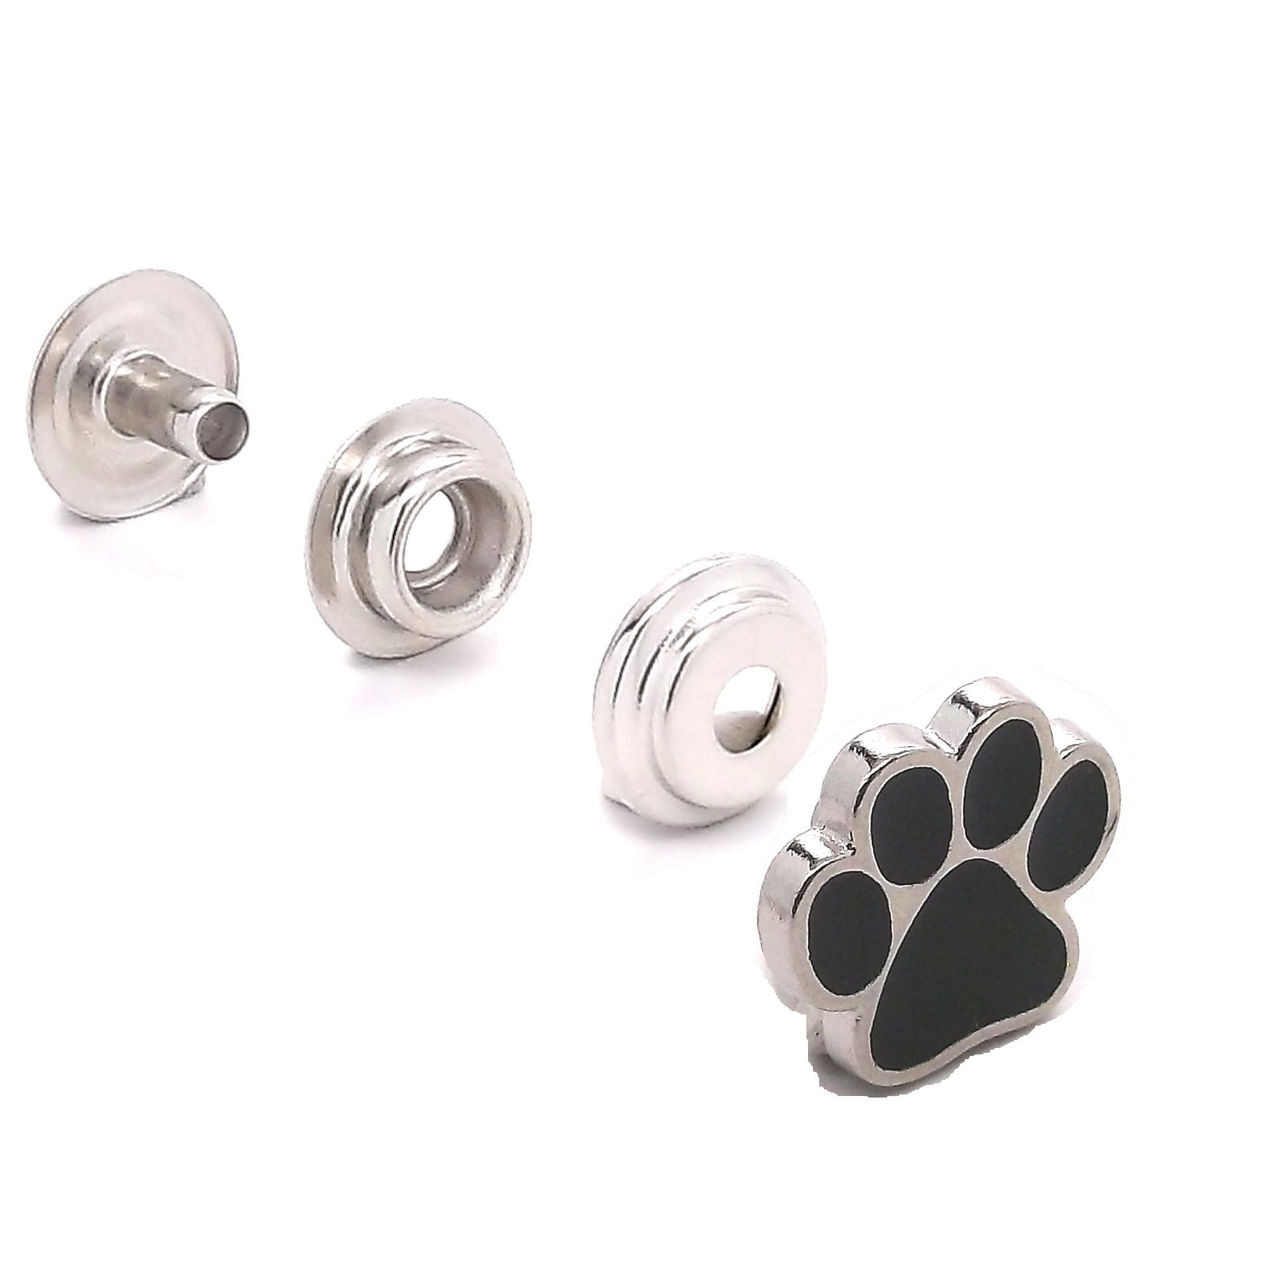 Paw Print Line 24 Snap Cap Silver with Black Set